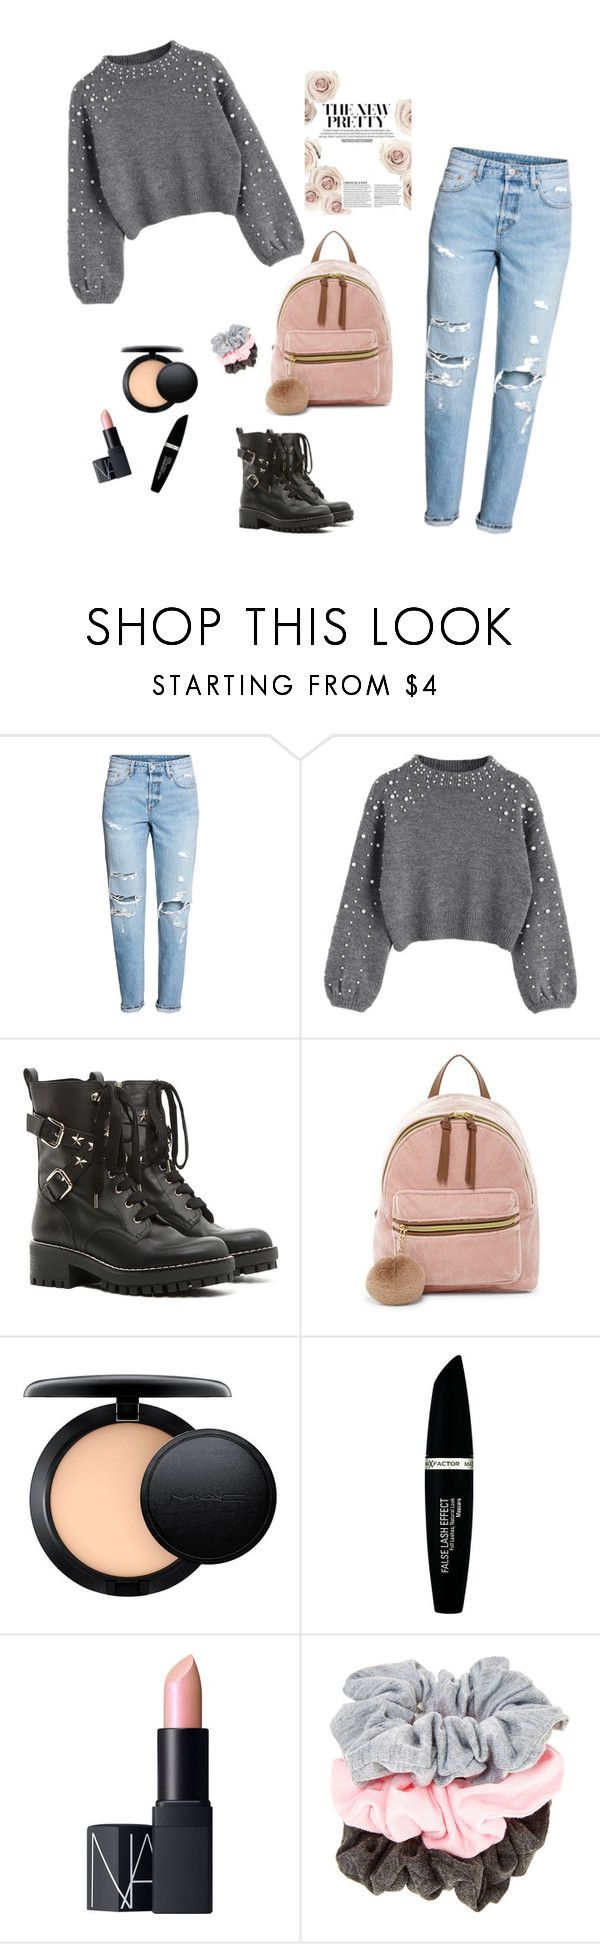 """pretty"" by aminiona ❤ liked on Polyvore featuring H&M, RED Valentino, T-shirt & Jeans, MAC Cosmetics, Max Factor and NARS Cosmetics"